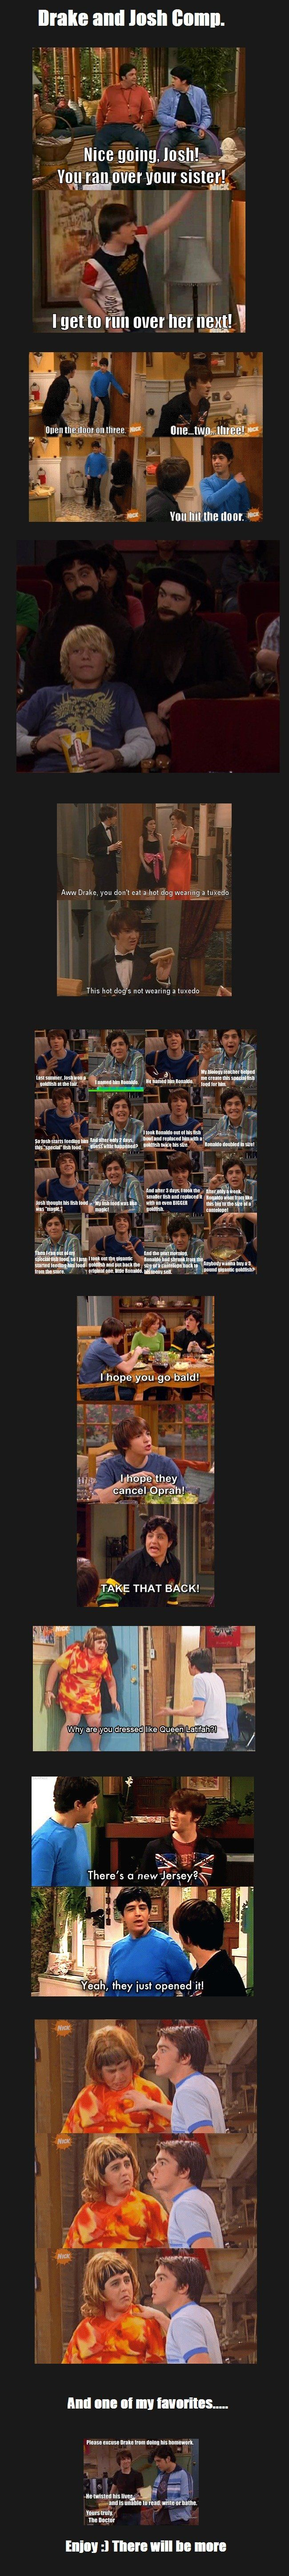 Drake and Josh will always be one of my favorite shows <3